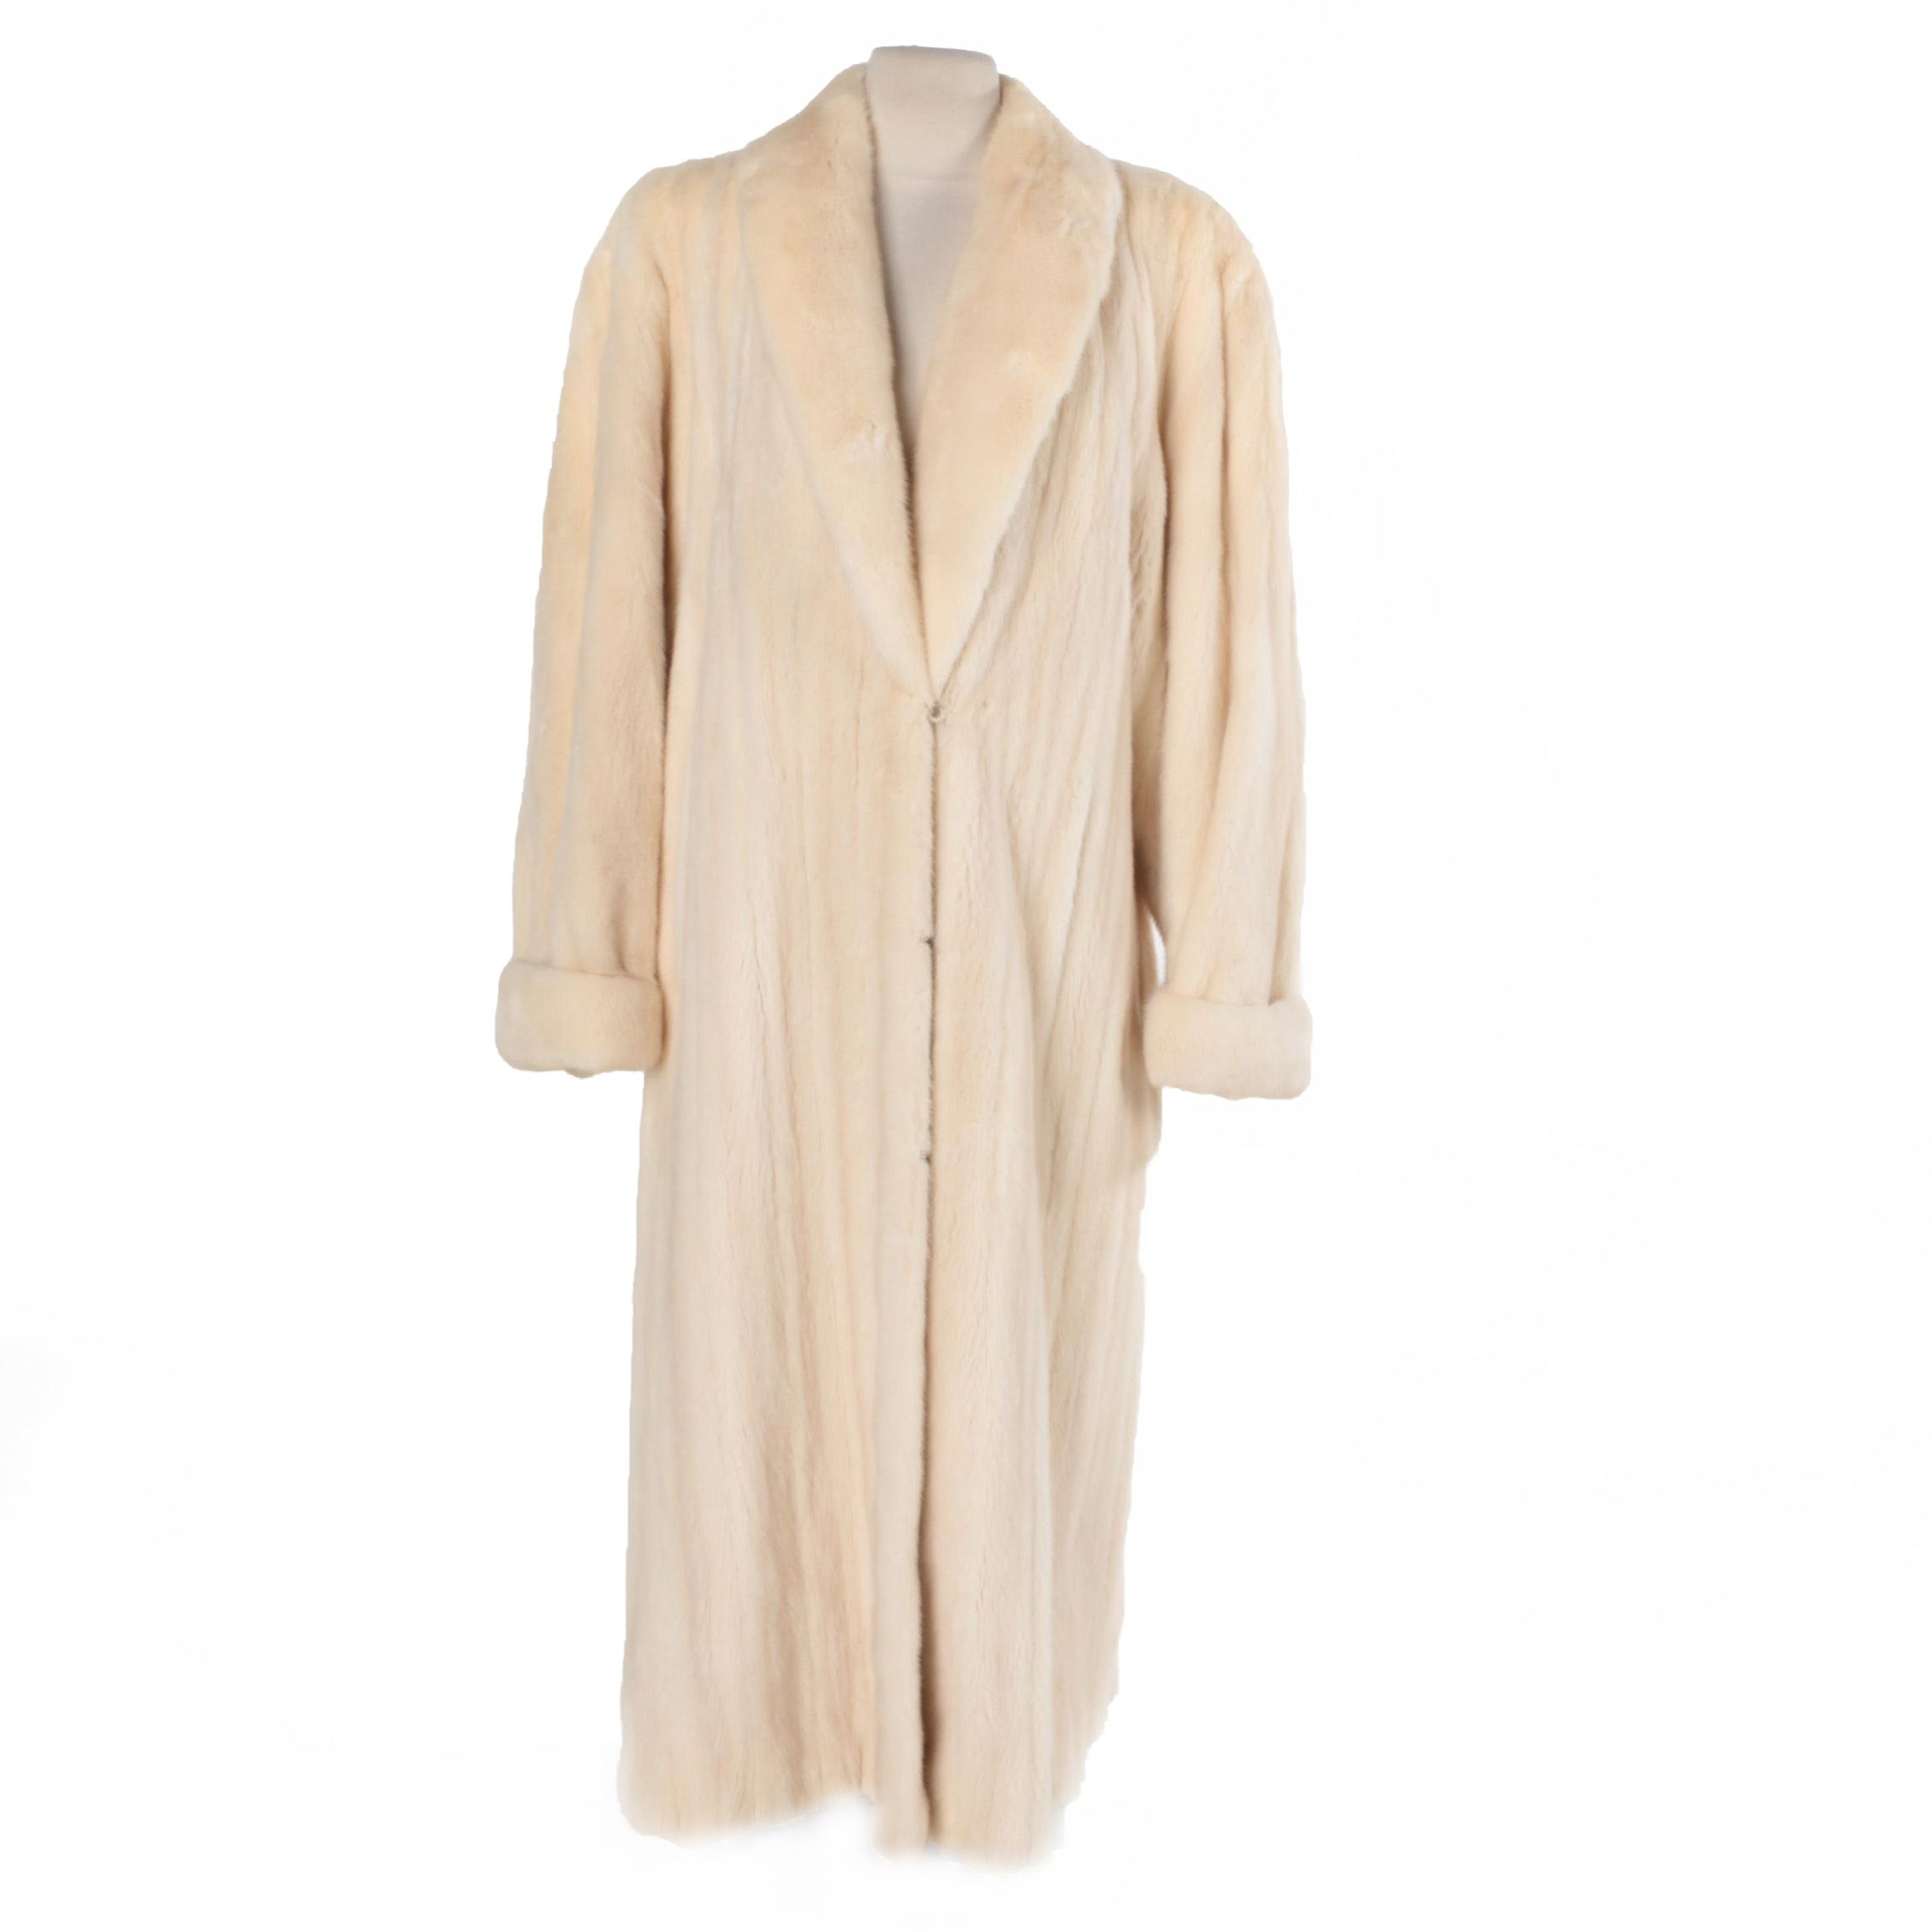 Women's Vintage Revillon Museum Collection Full-Length Blonde Mink Fur Coat